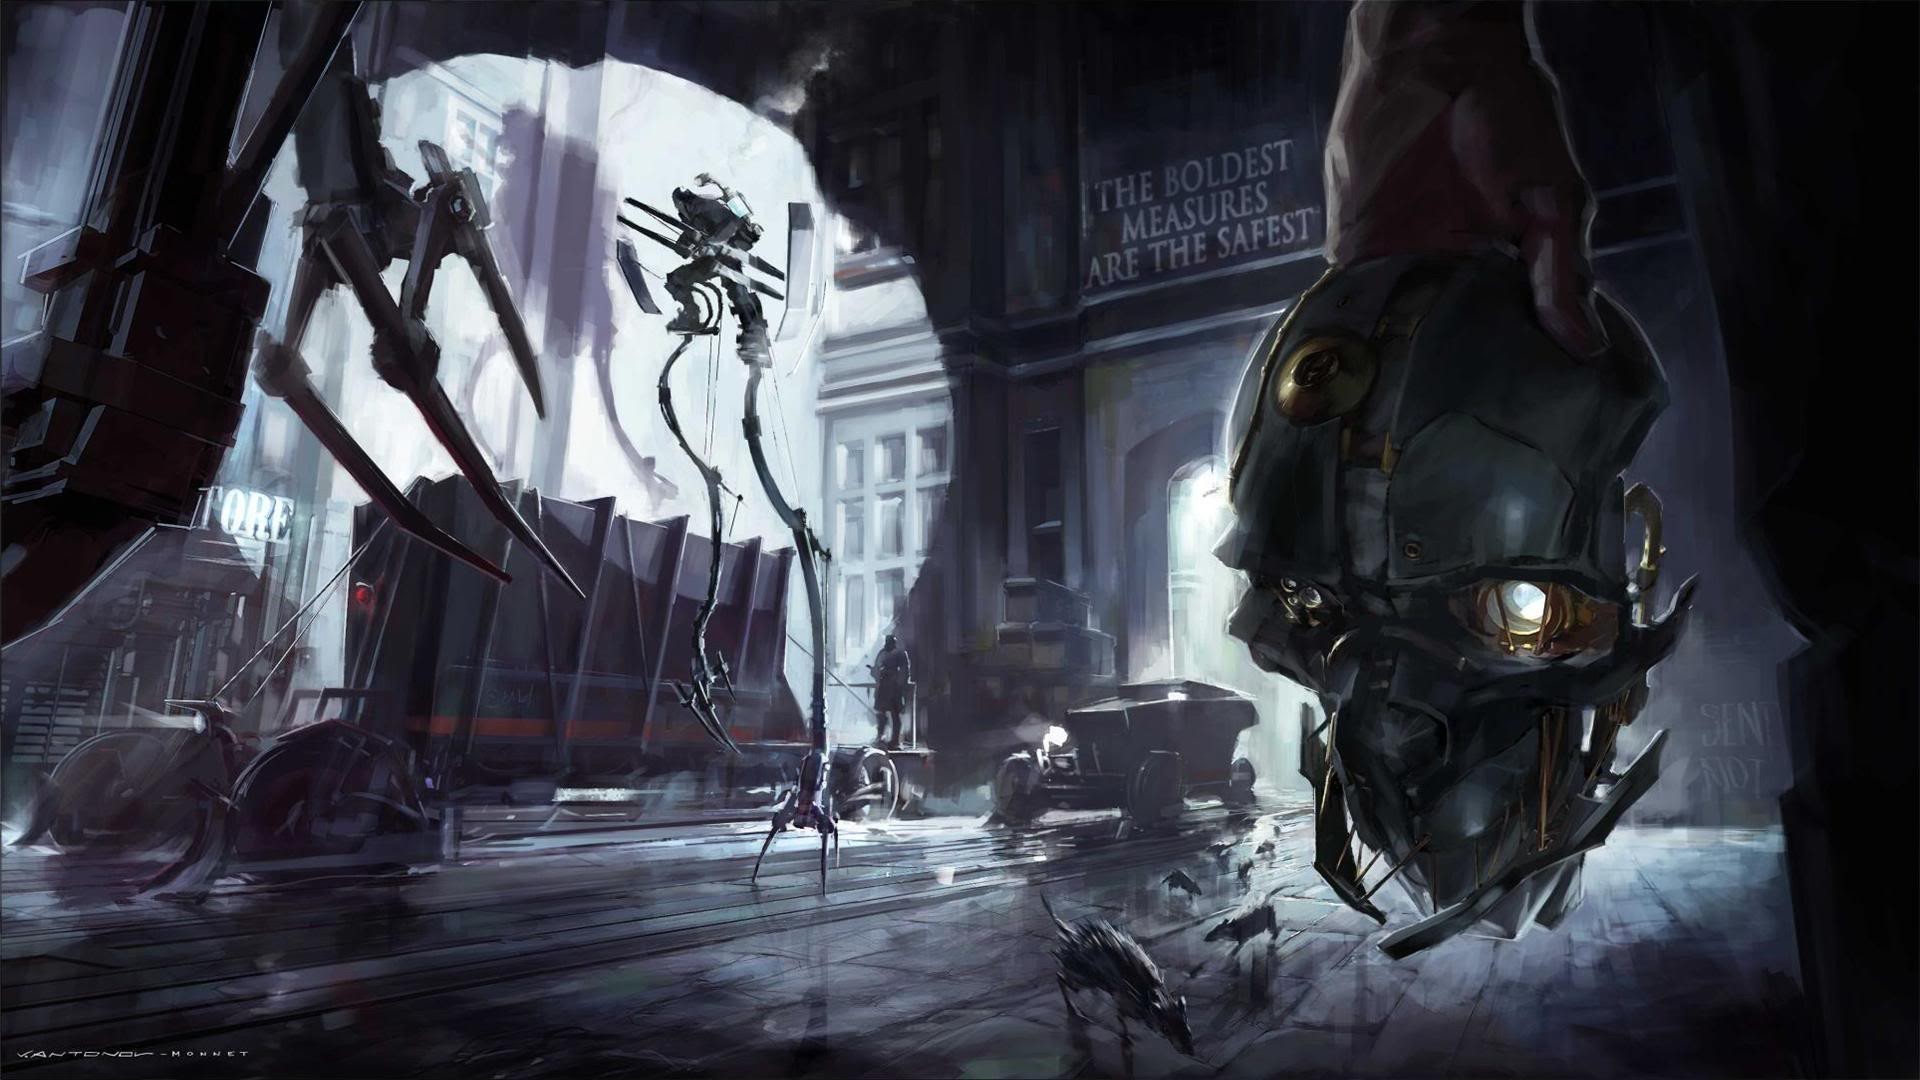 Dishonored Fan Art Corvo Video Games Wallpapers Hd: Video Games Robots Dishonored Game Art Wallpaper